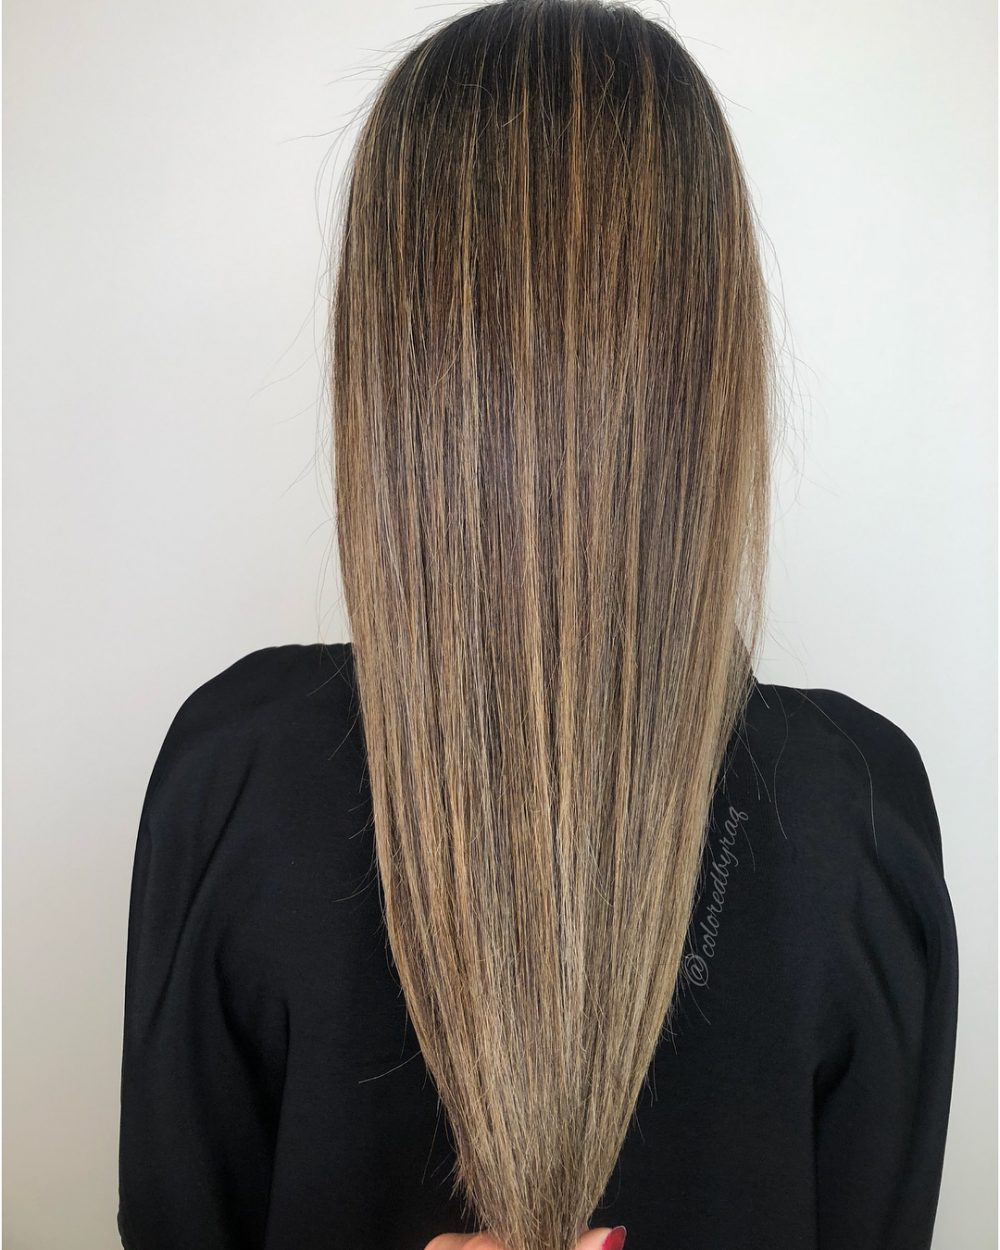 27 Hottest Brown Hair Color Ideas: Perfect Examples of Brunette Hair